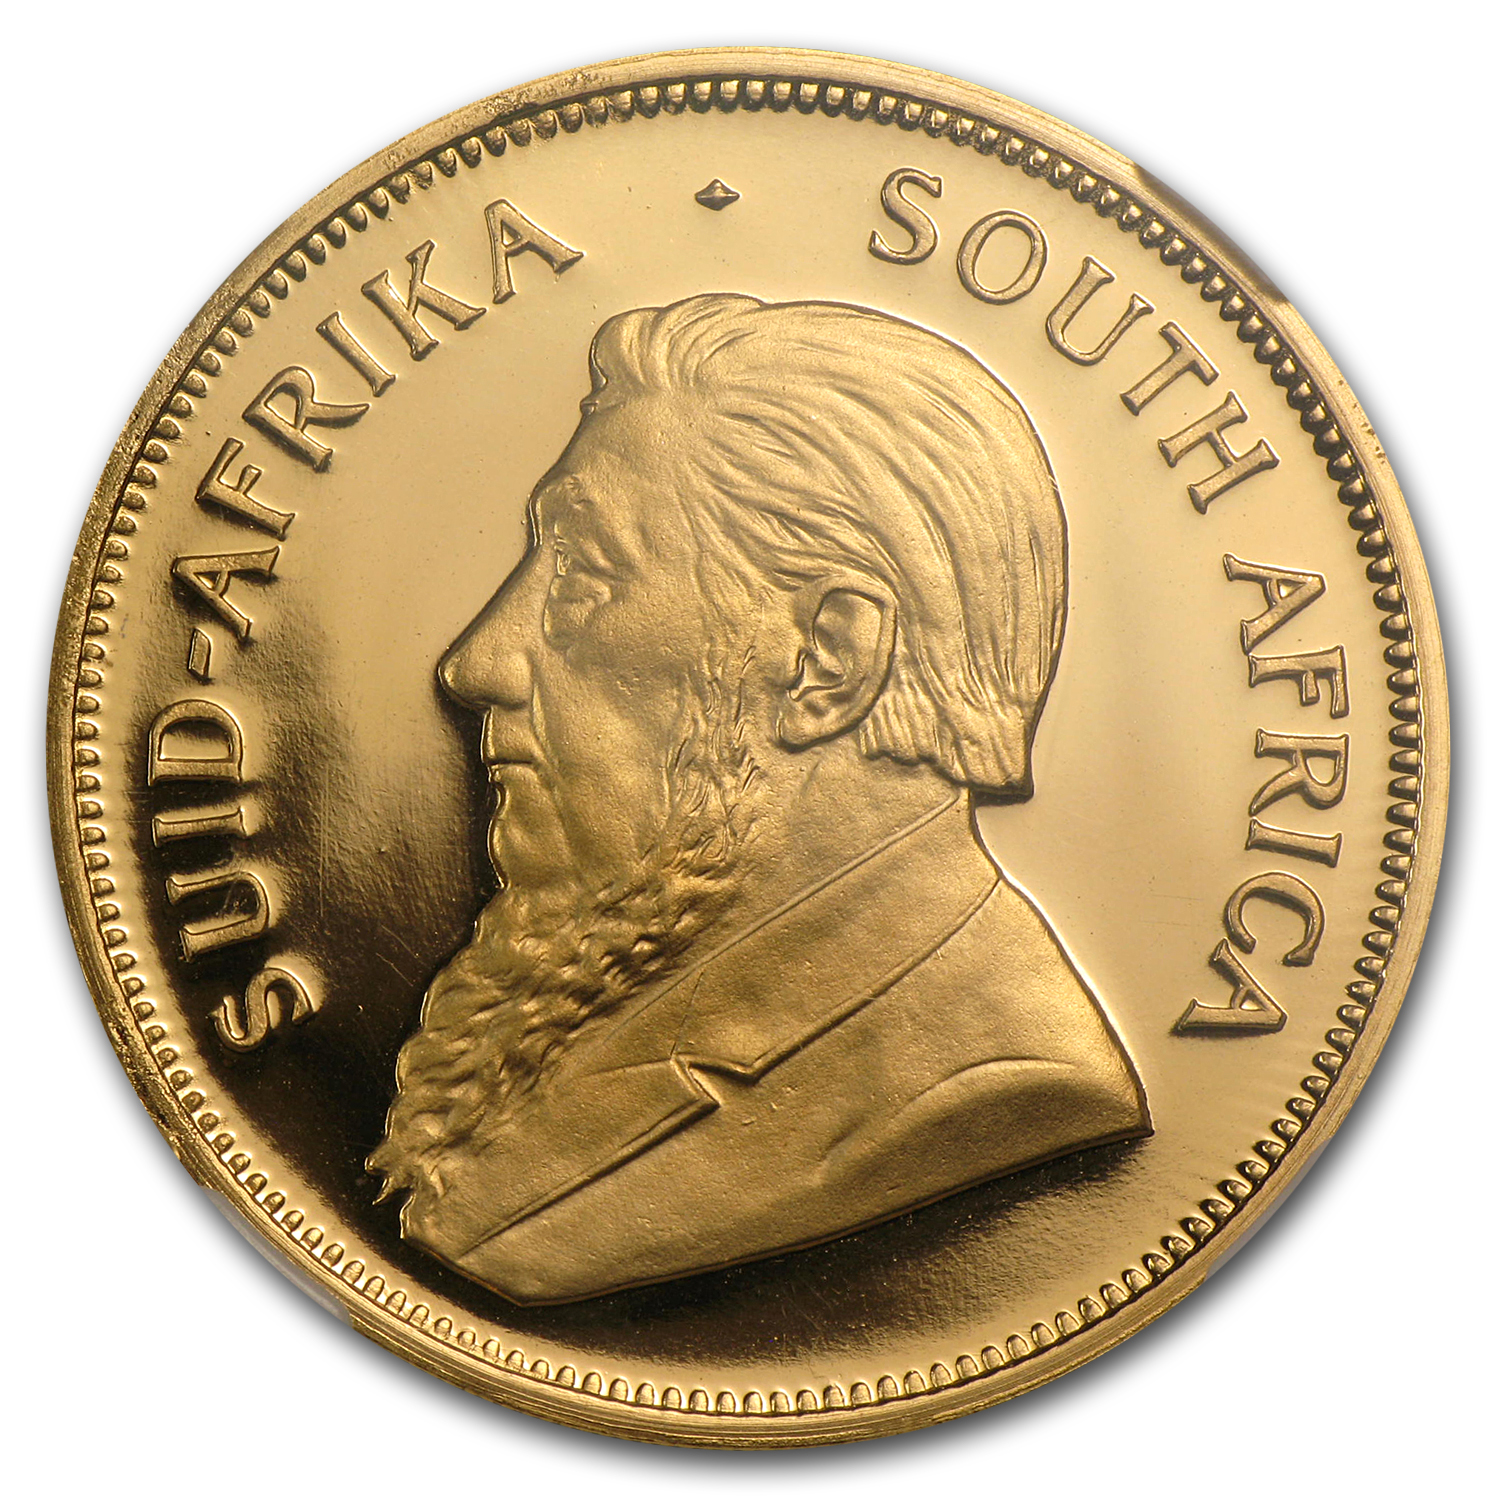 1983 South Africa 1 oz Gold Krugerrand PF-68 NGC